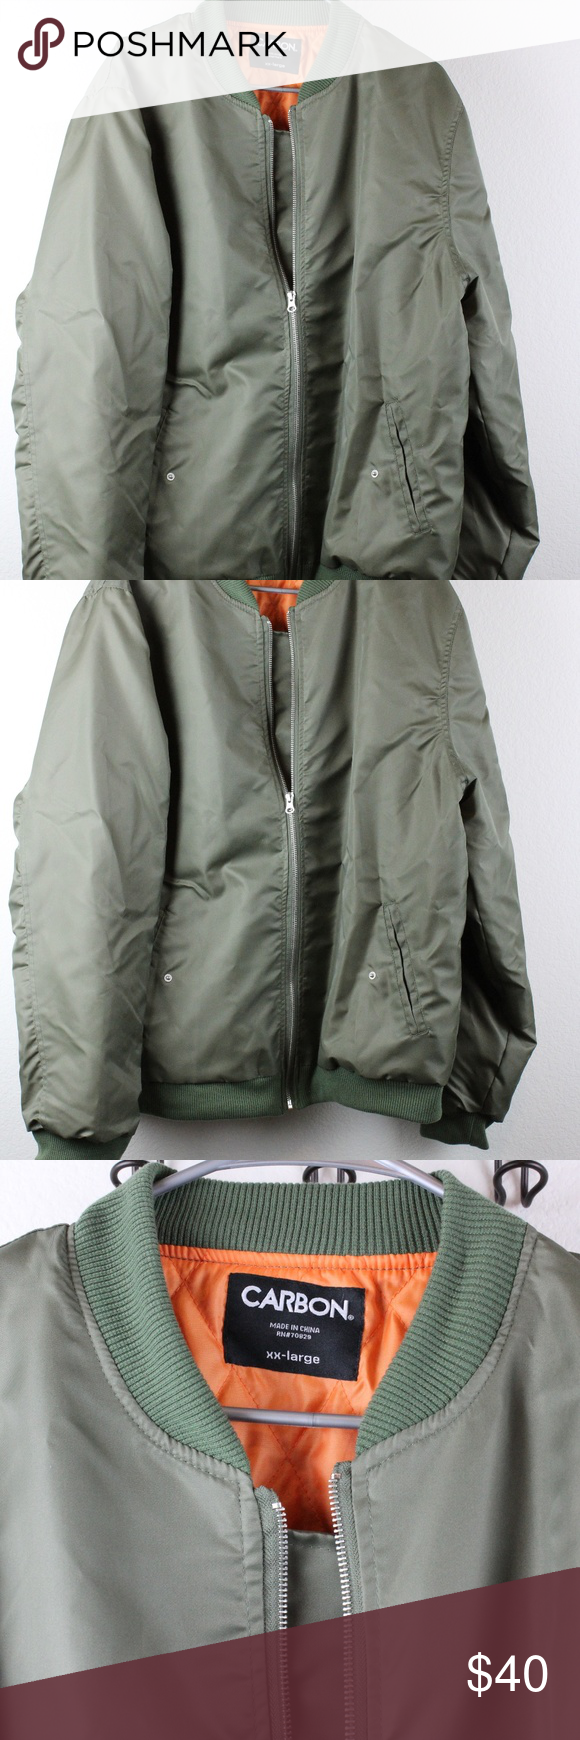 79fac802e Men's Army Green Bomber Jacket, Carbon, XXL BRAND NEW NEVER WORK WITOUT  TAGS CARBON SIZE XXL ARMY GREEN BOMBER JACKET # 0066 Carbon Jackets & Coats  Bomber & ...